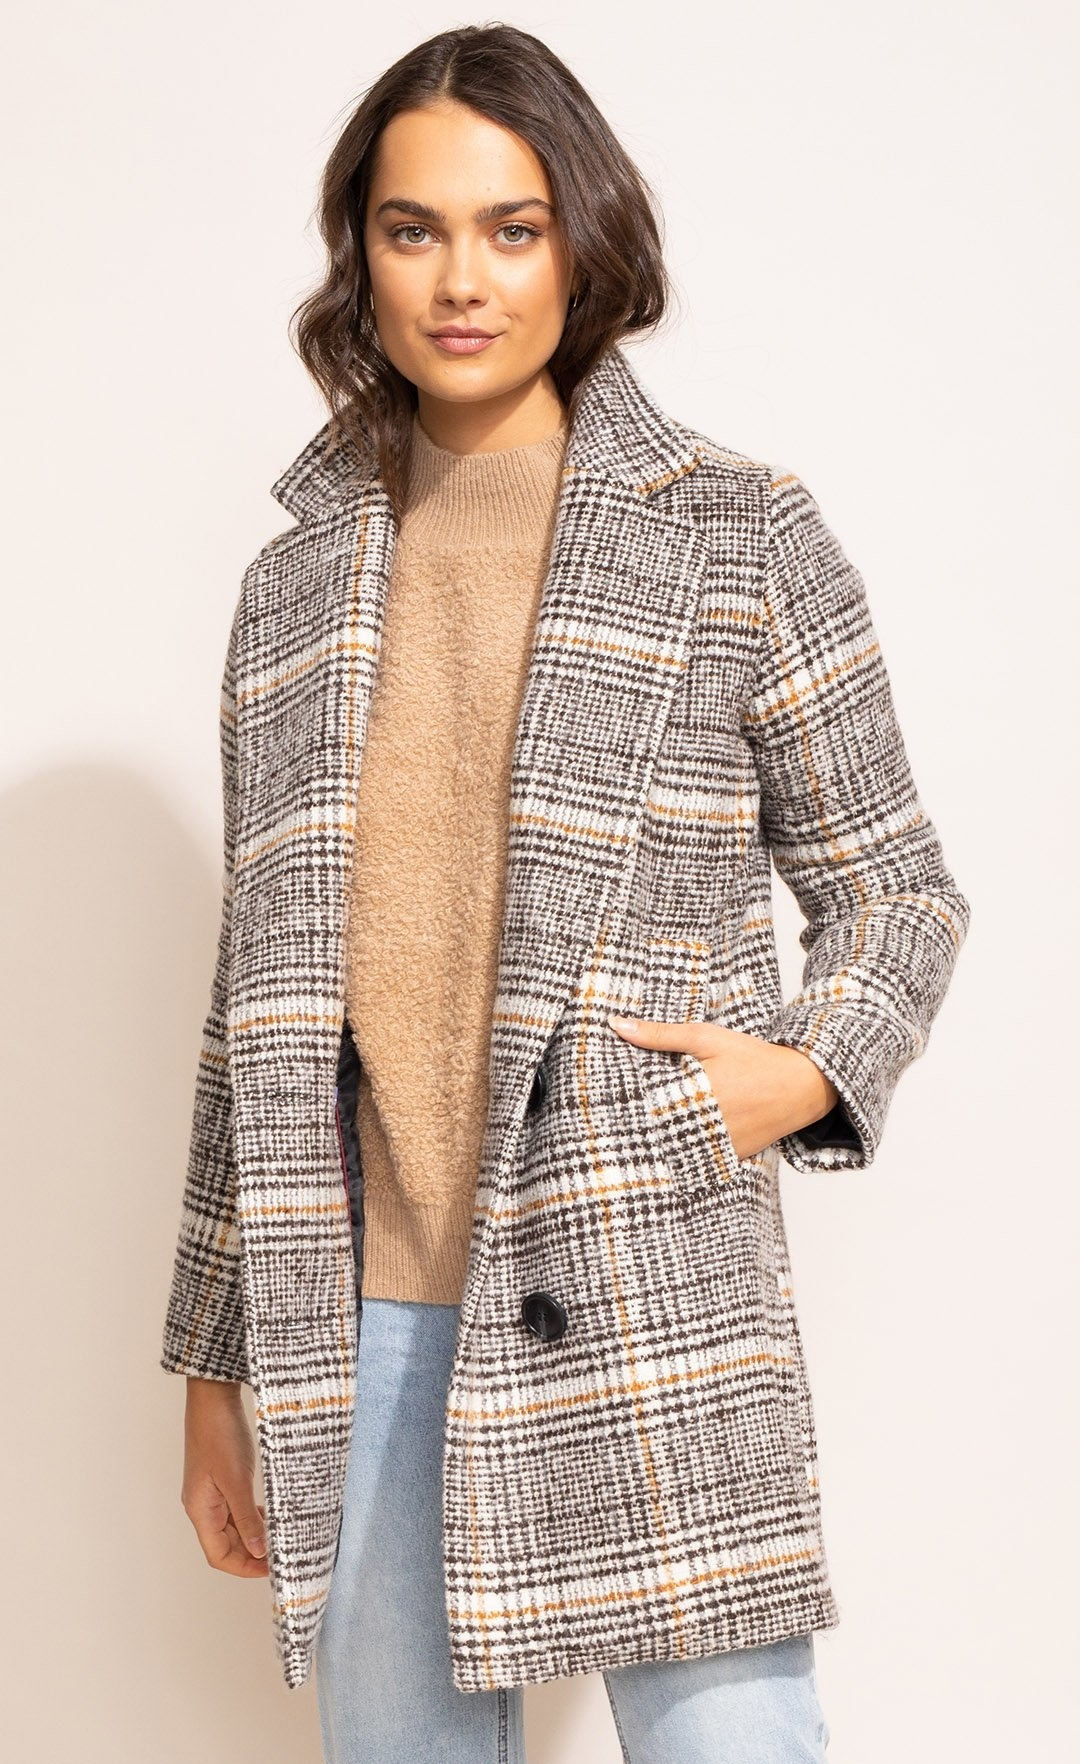 Pink Martini Siena Coat - Brown